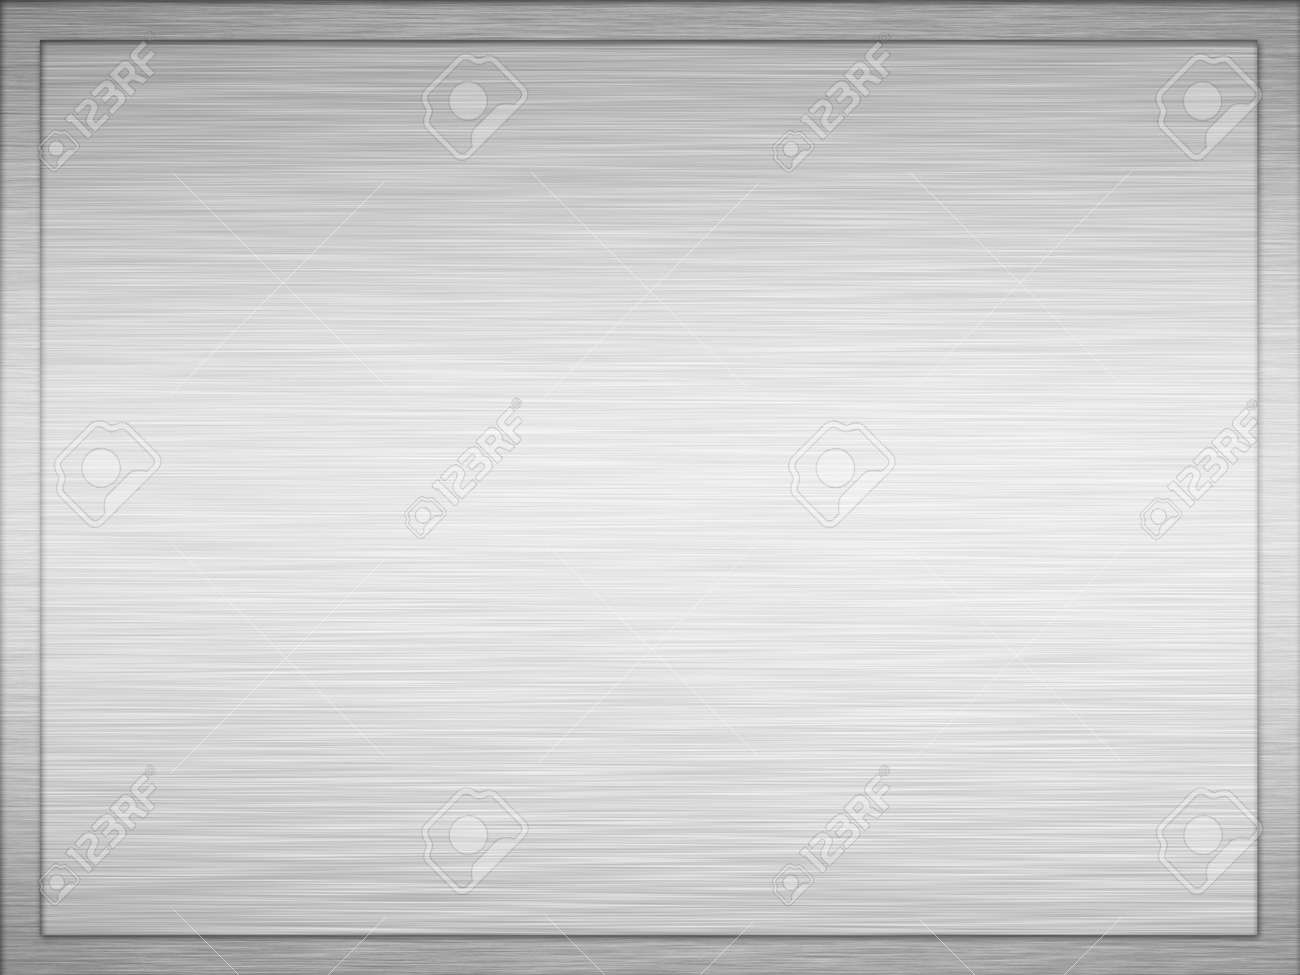 large image of a brushed metal plaque Stock Photo - 1566782